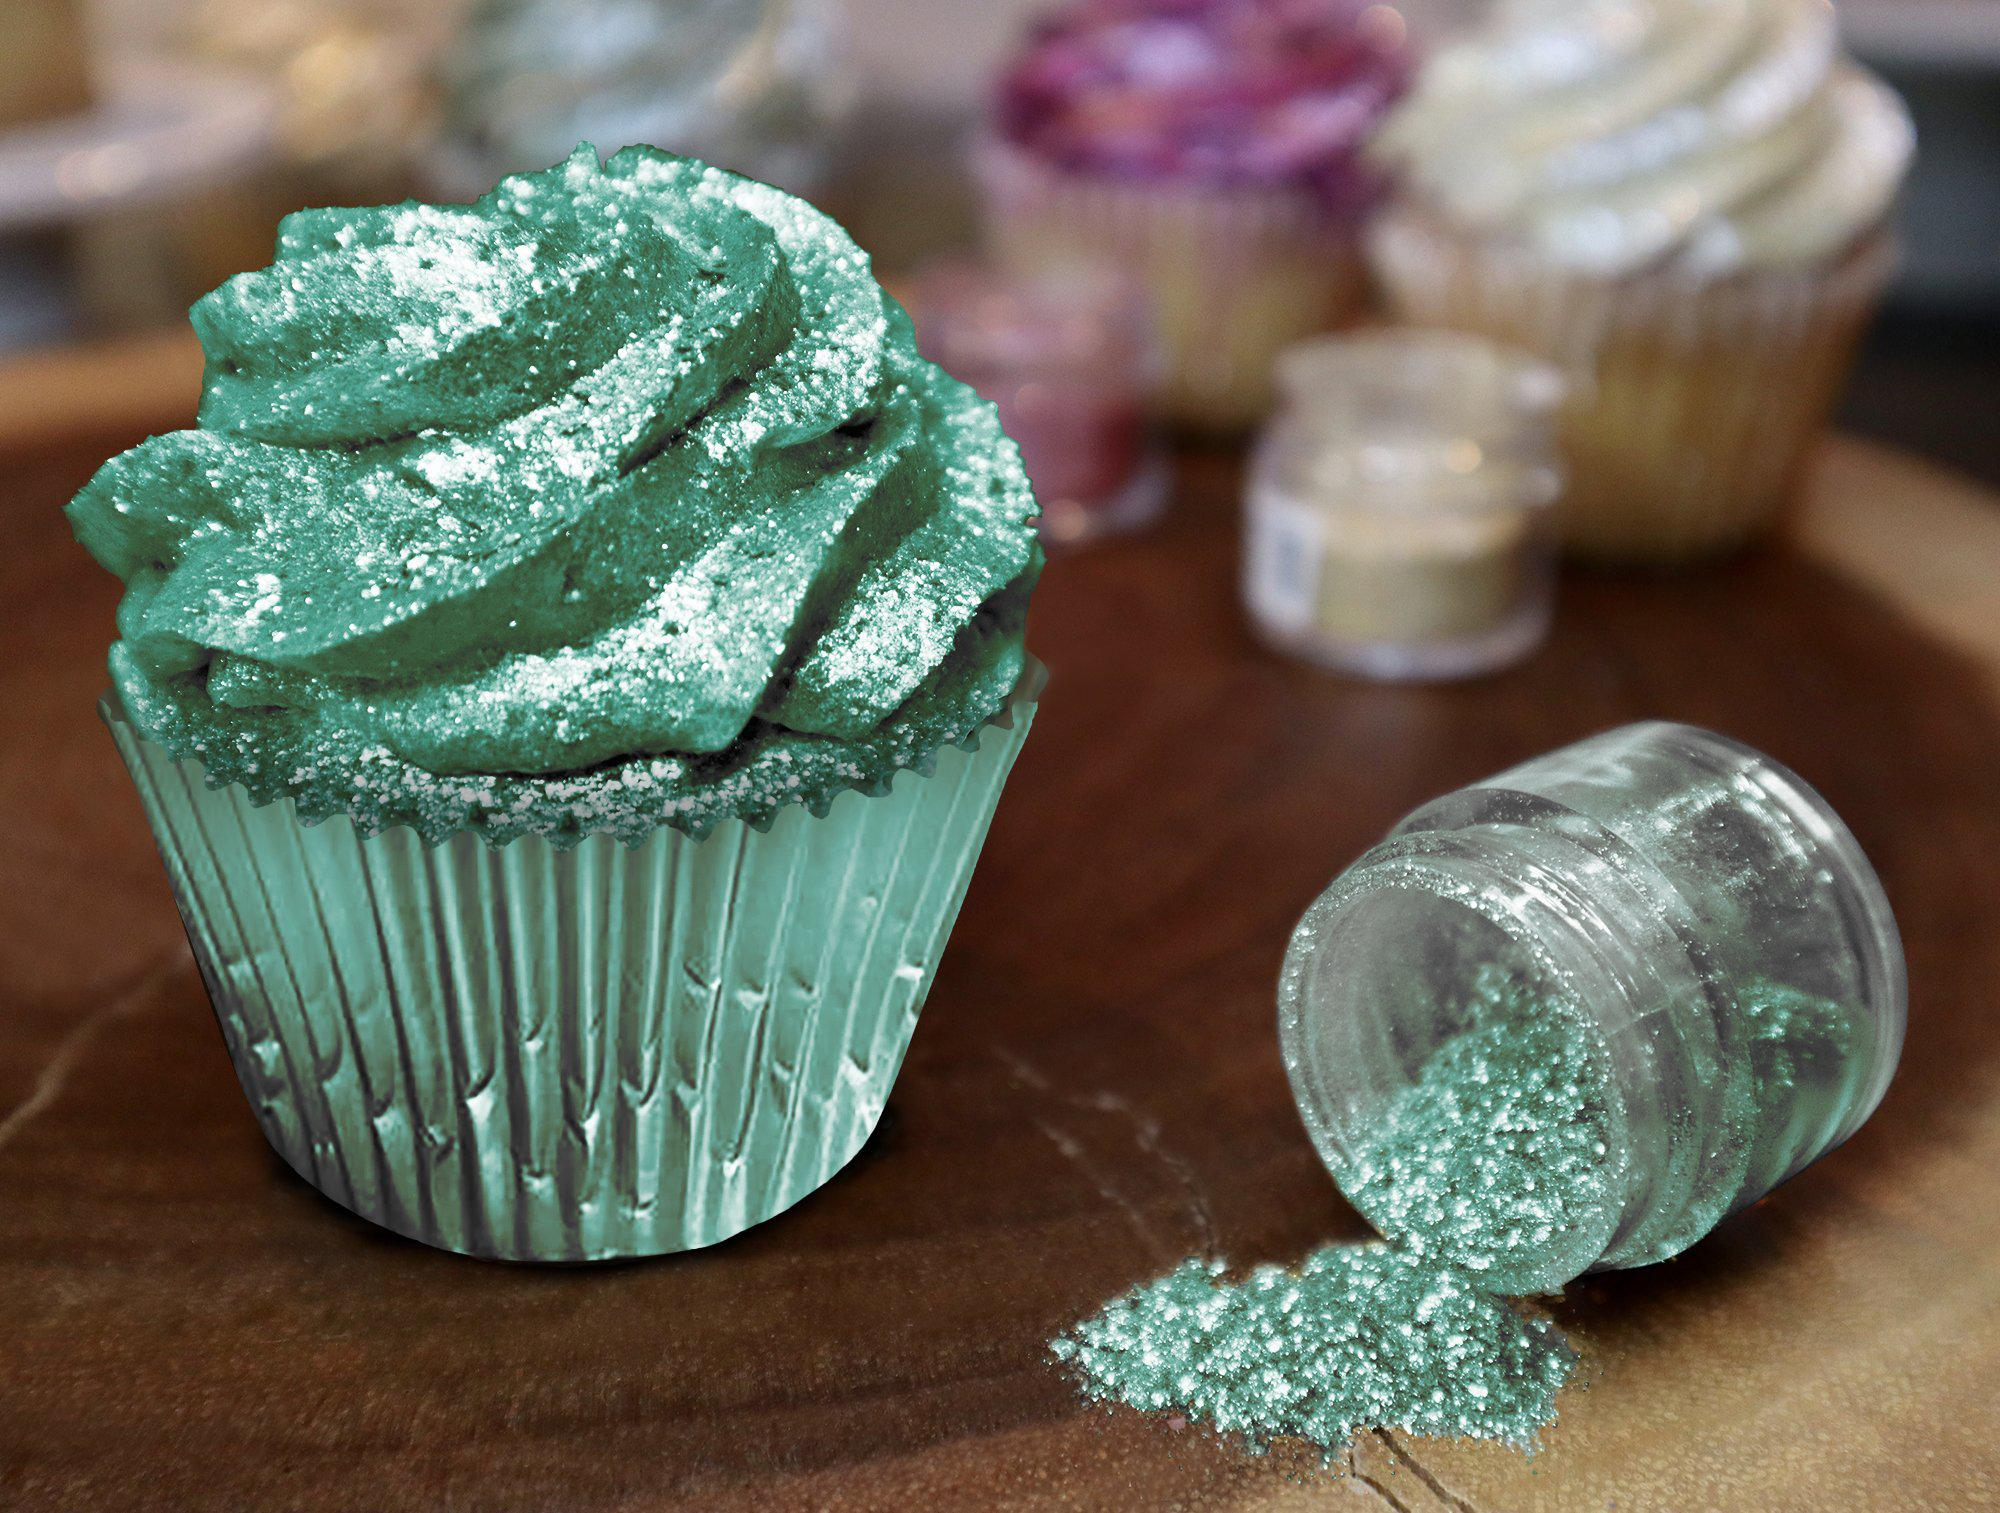 Emerald Green Tinker Dust Food Grade Edible Glitter, 5g | Food Grade Glitter-Tinker Dust-Bakell